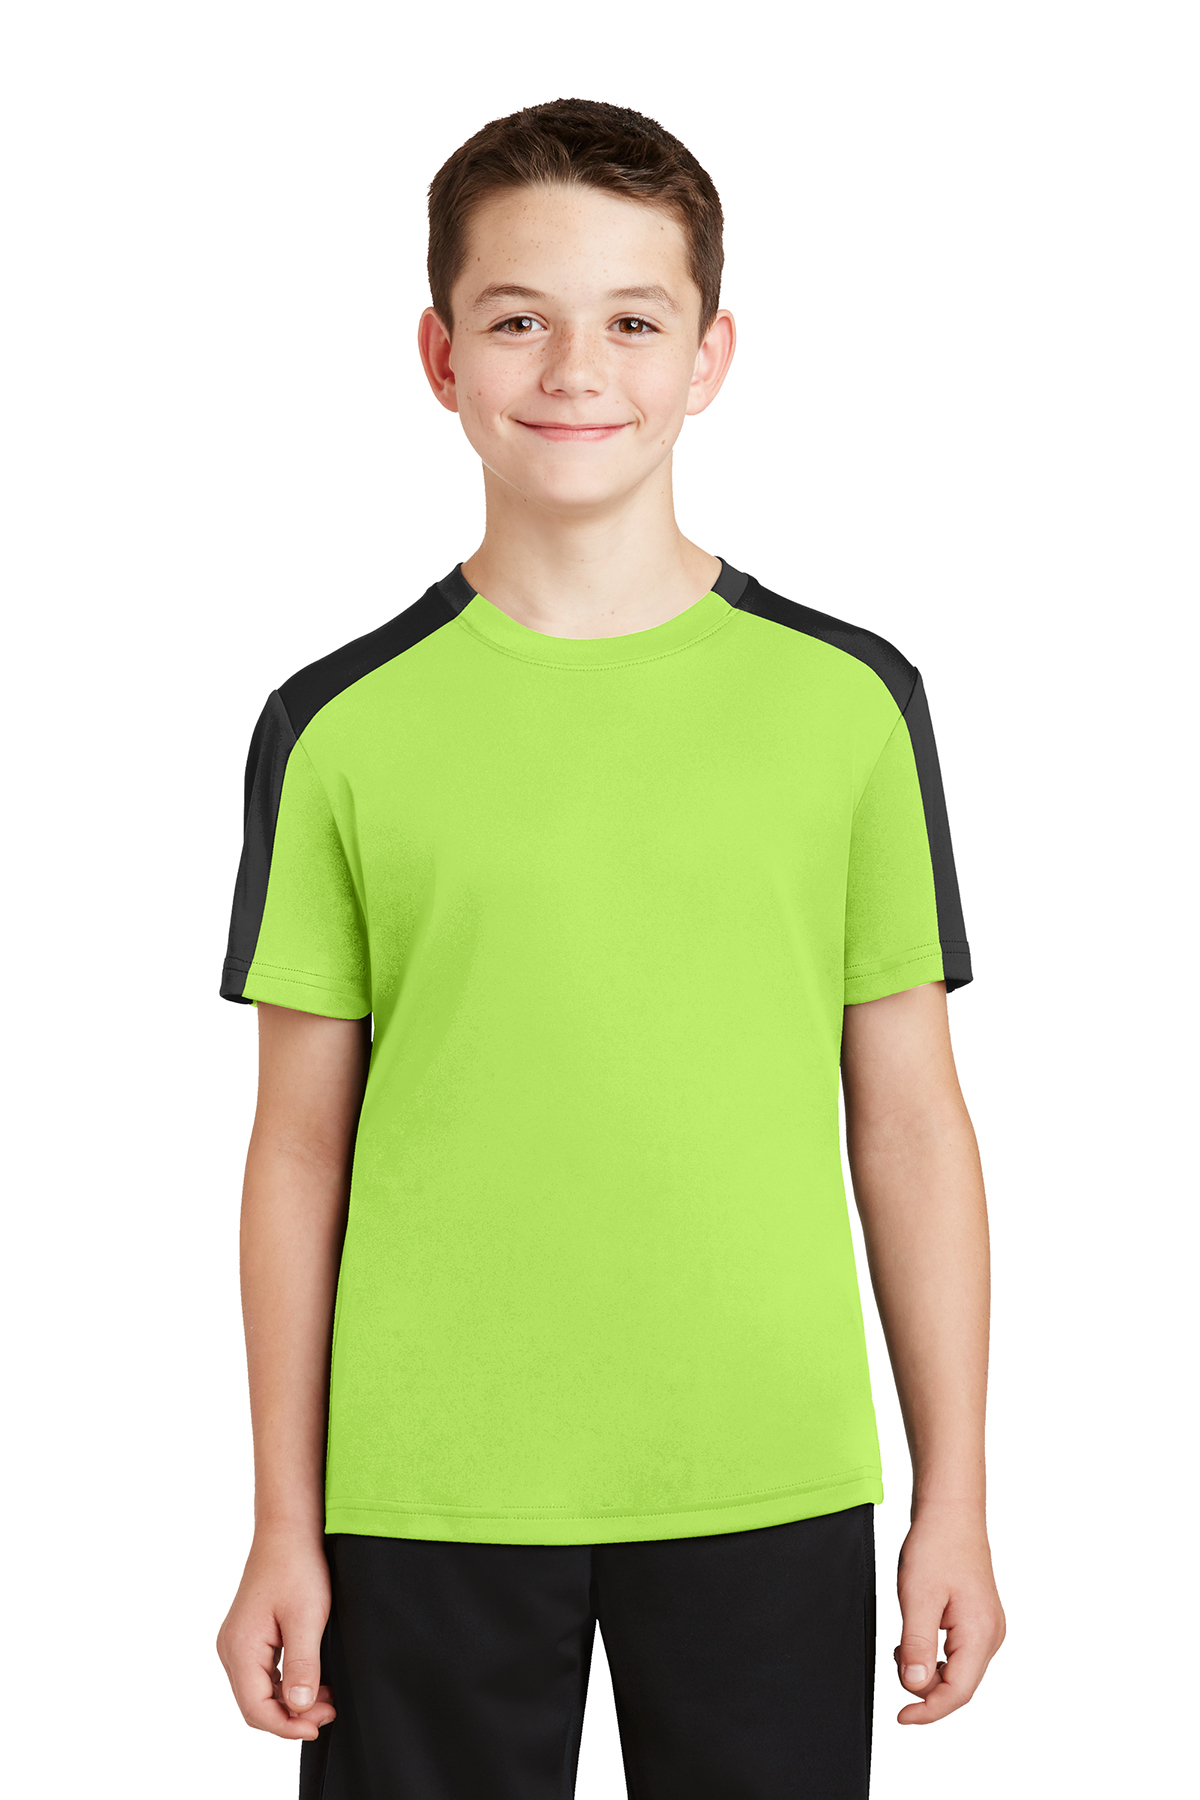 YST350 Sport-Tek Youth Competitor Tee